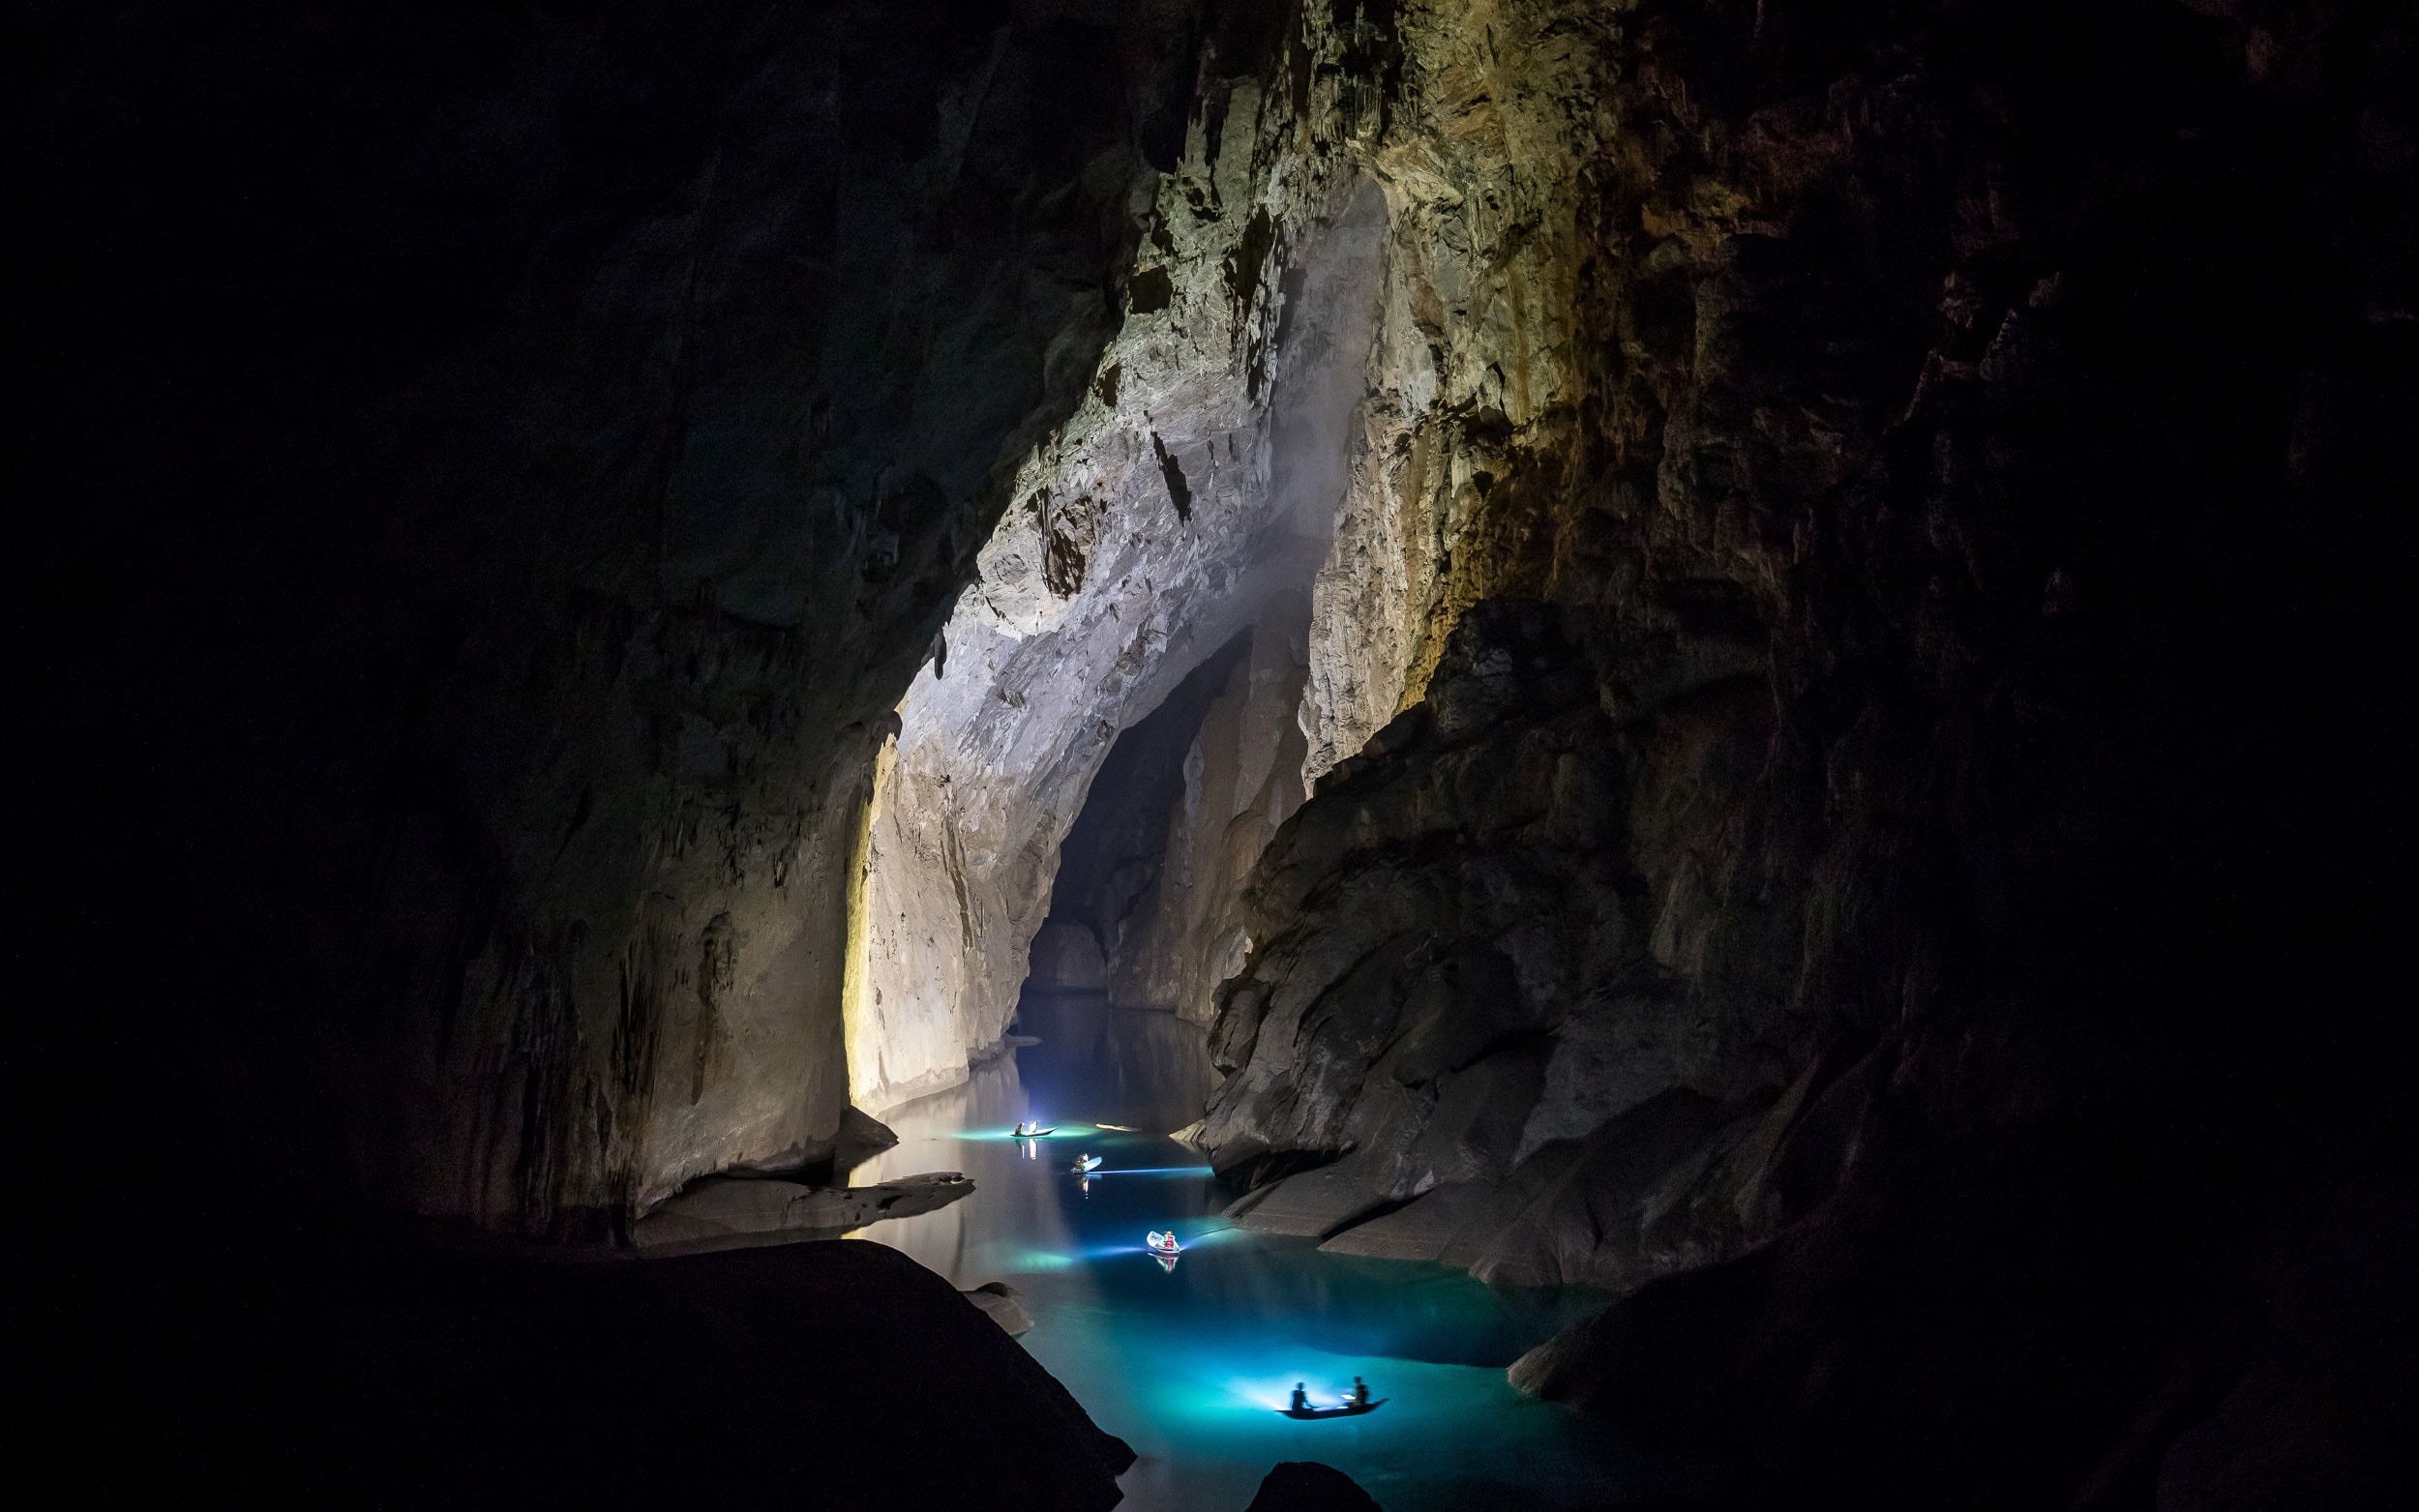 A film crew visited the cave in February to highlight the cave's uniqueness